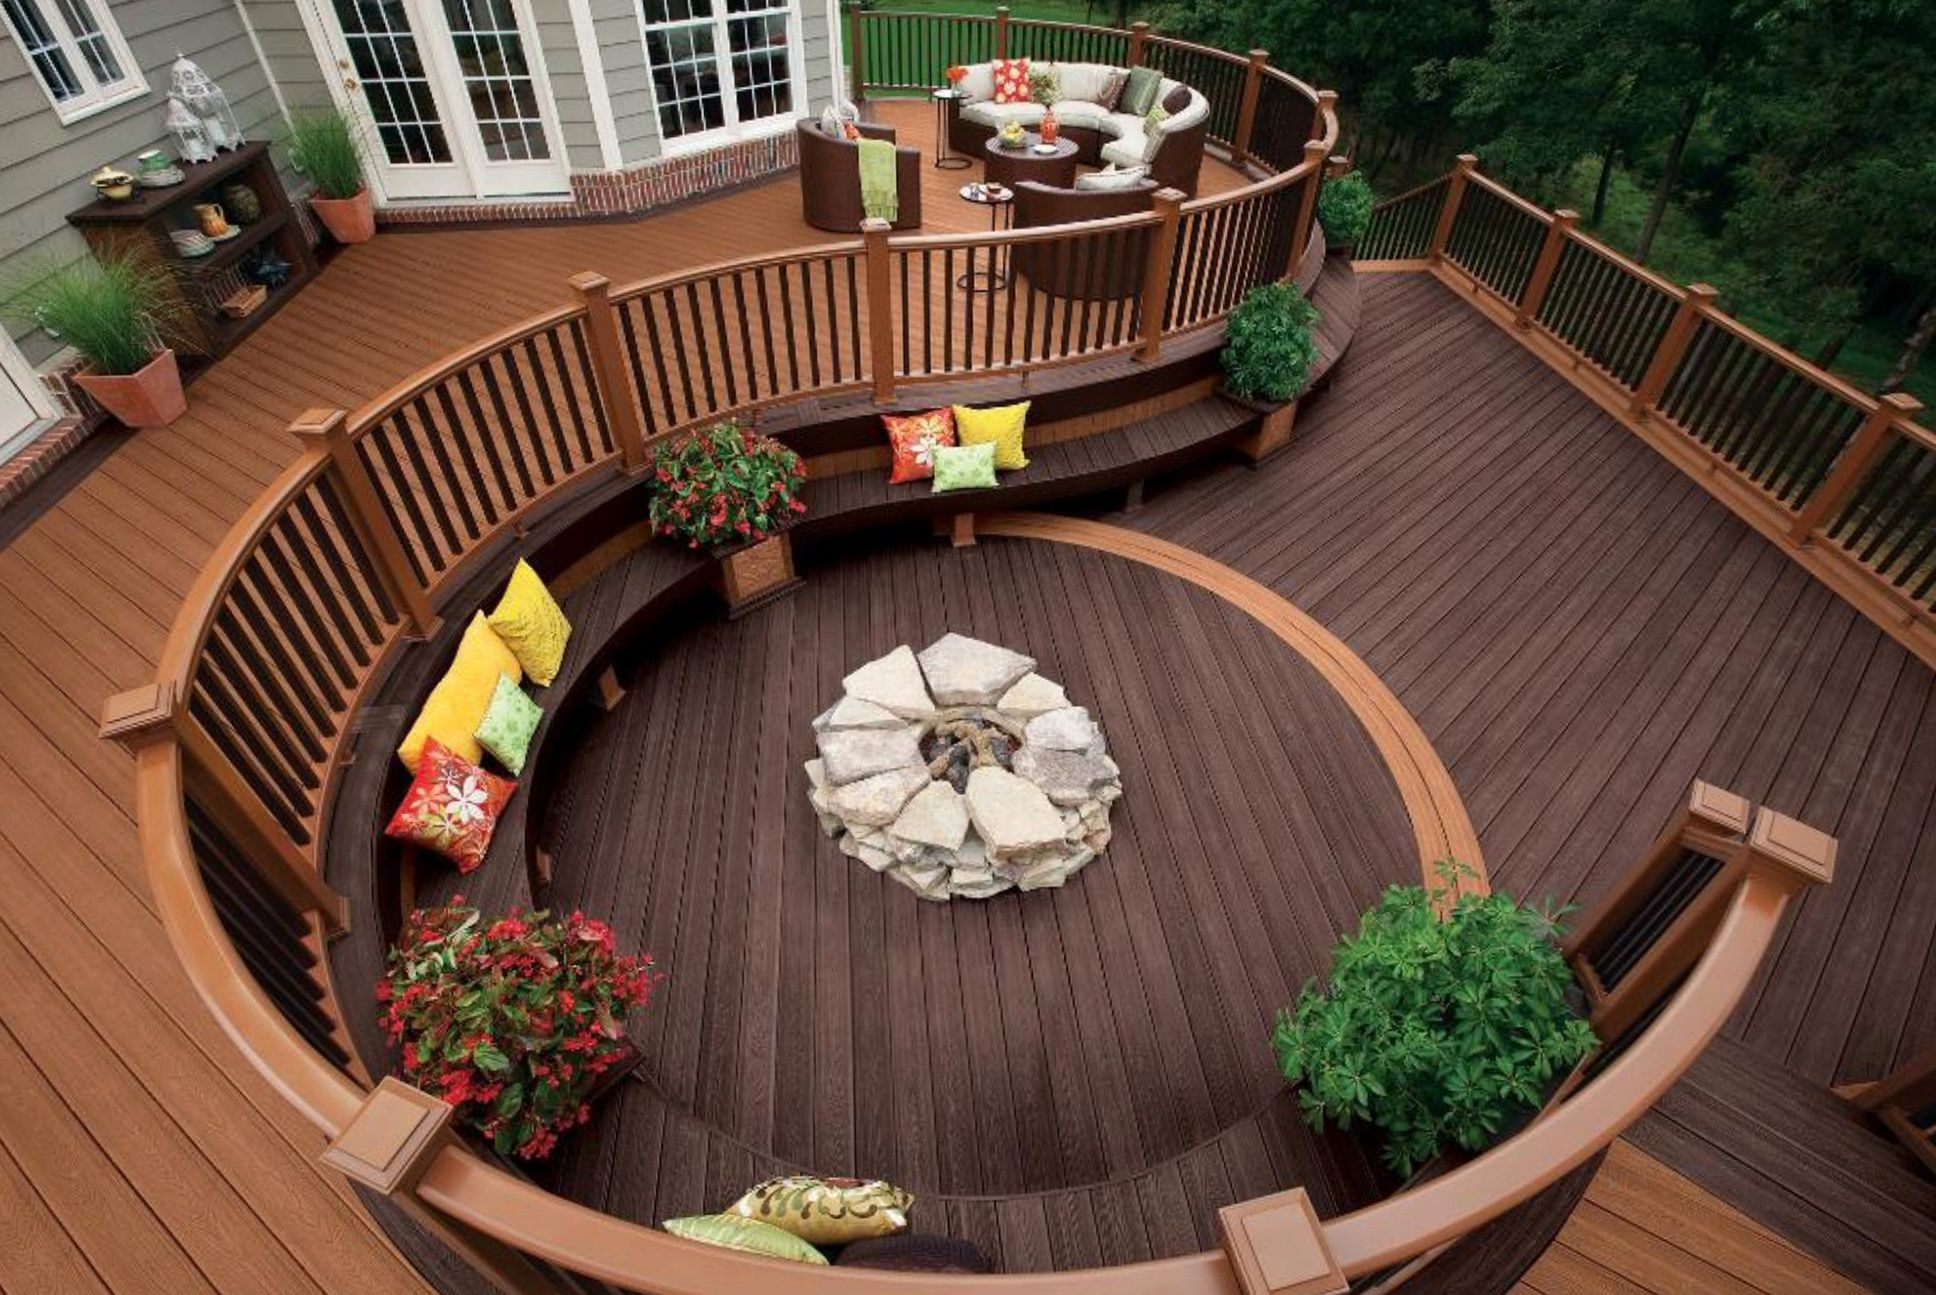 Superbe Multi Tiered Outdoor Patio With Wooden Deck Completed With Rustic Style Fire  Pit Idea